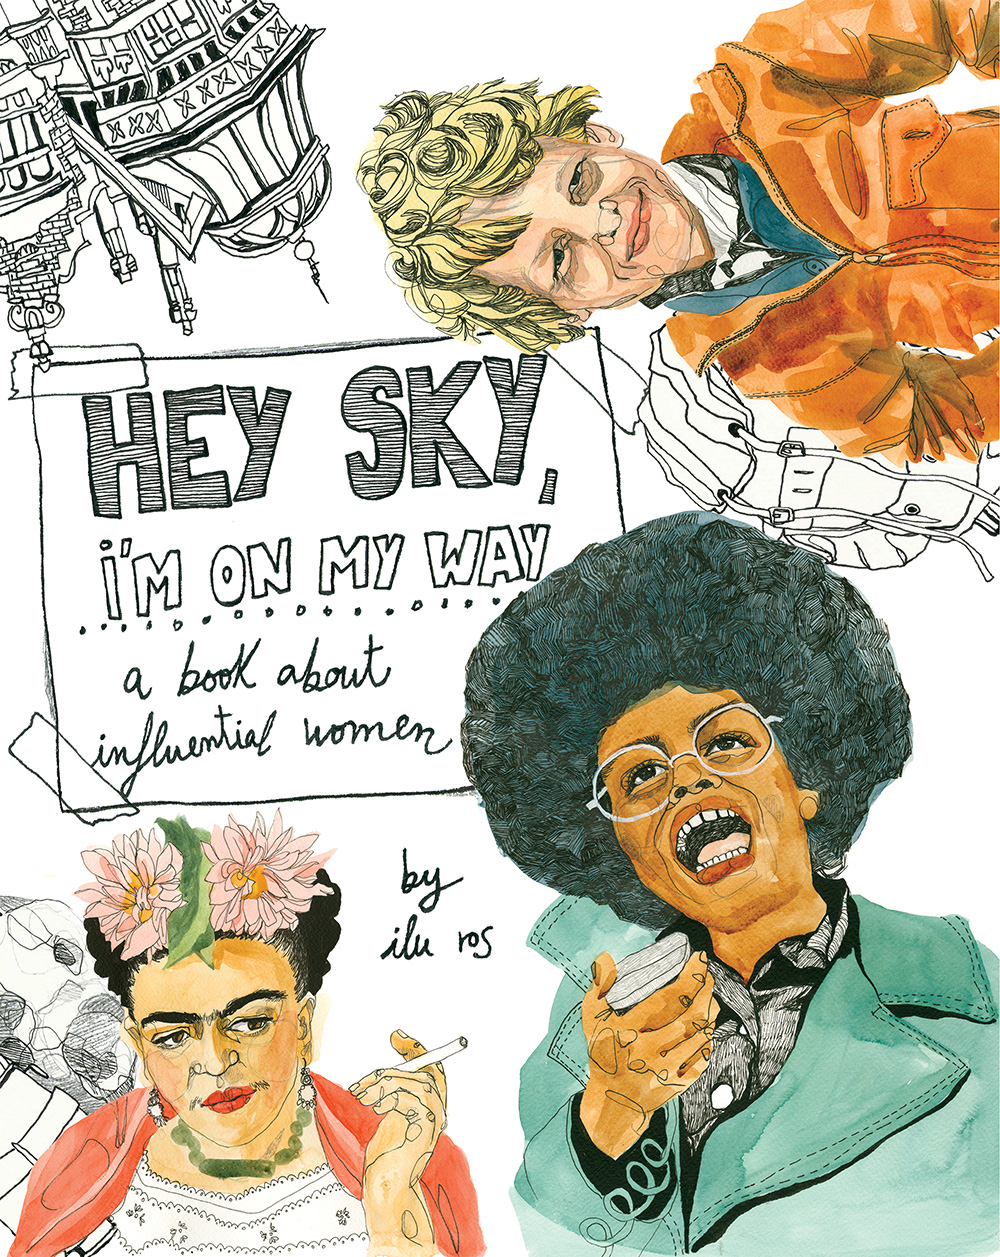 HEY SKY I'M ON MY WAY by ILU ROS portada